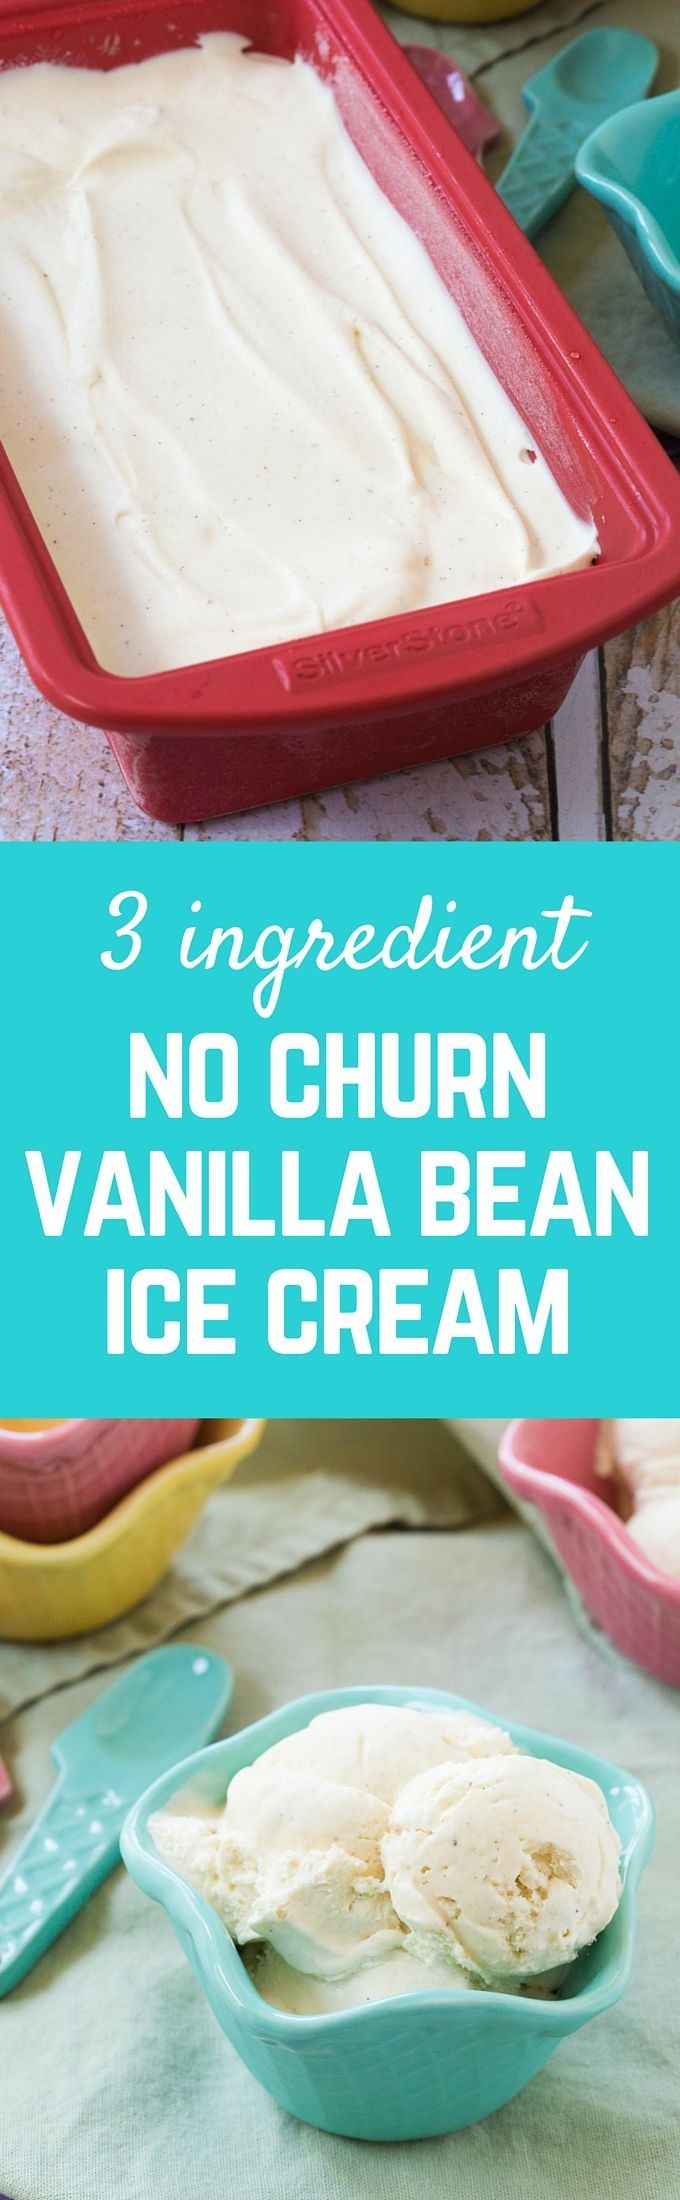 Vanilla bean ice cream is easily made at home -- three ingredients are all you need! No ice cream machine required. Summer just got much easier. Get the easy ice cream recipe on http://RachelCooks.com!